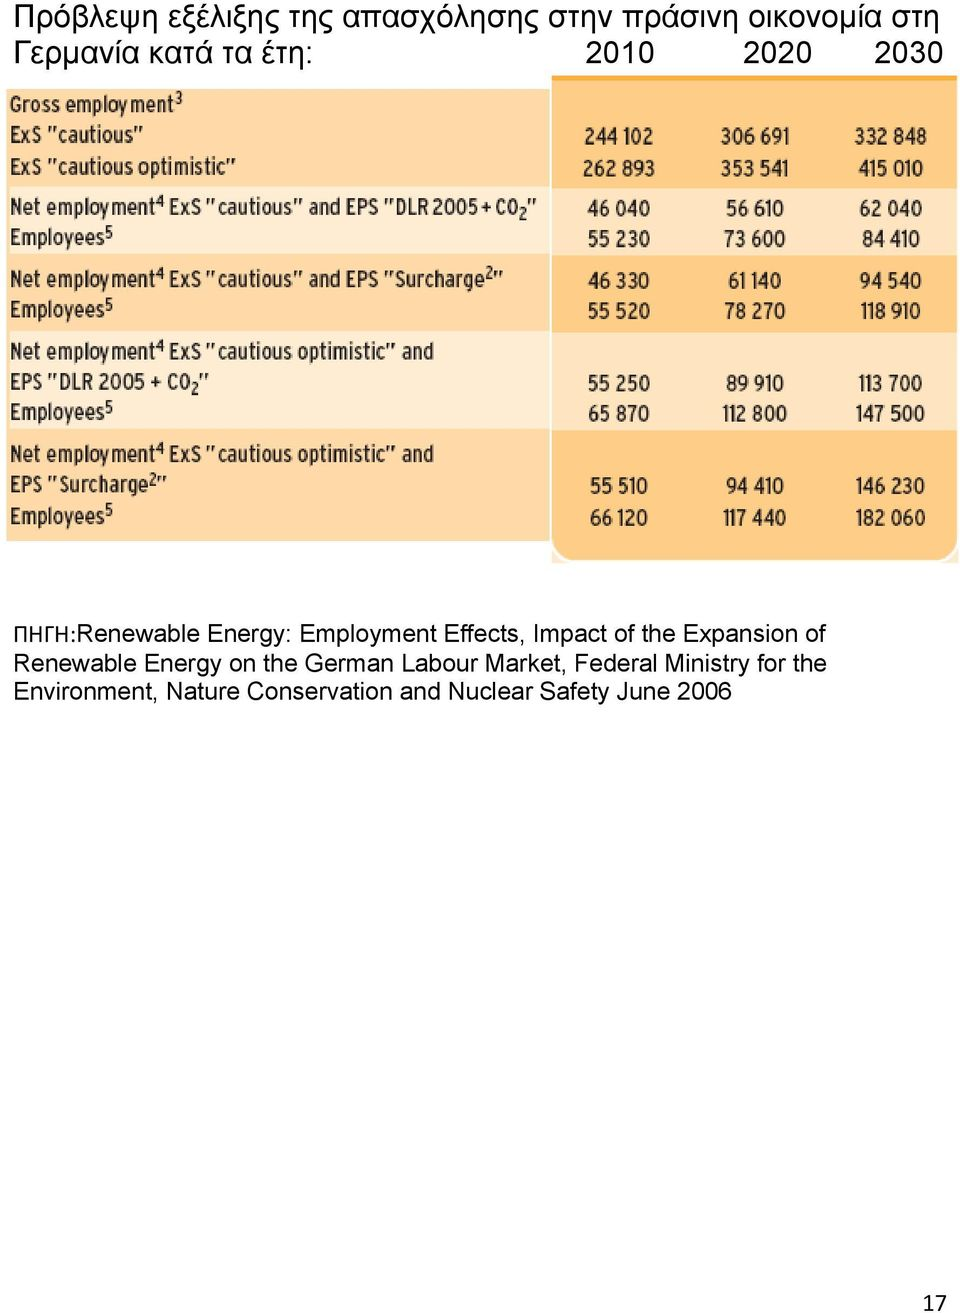 Impact of the Expansion of Renewable Energy on the German Labour Market,